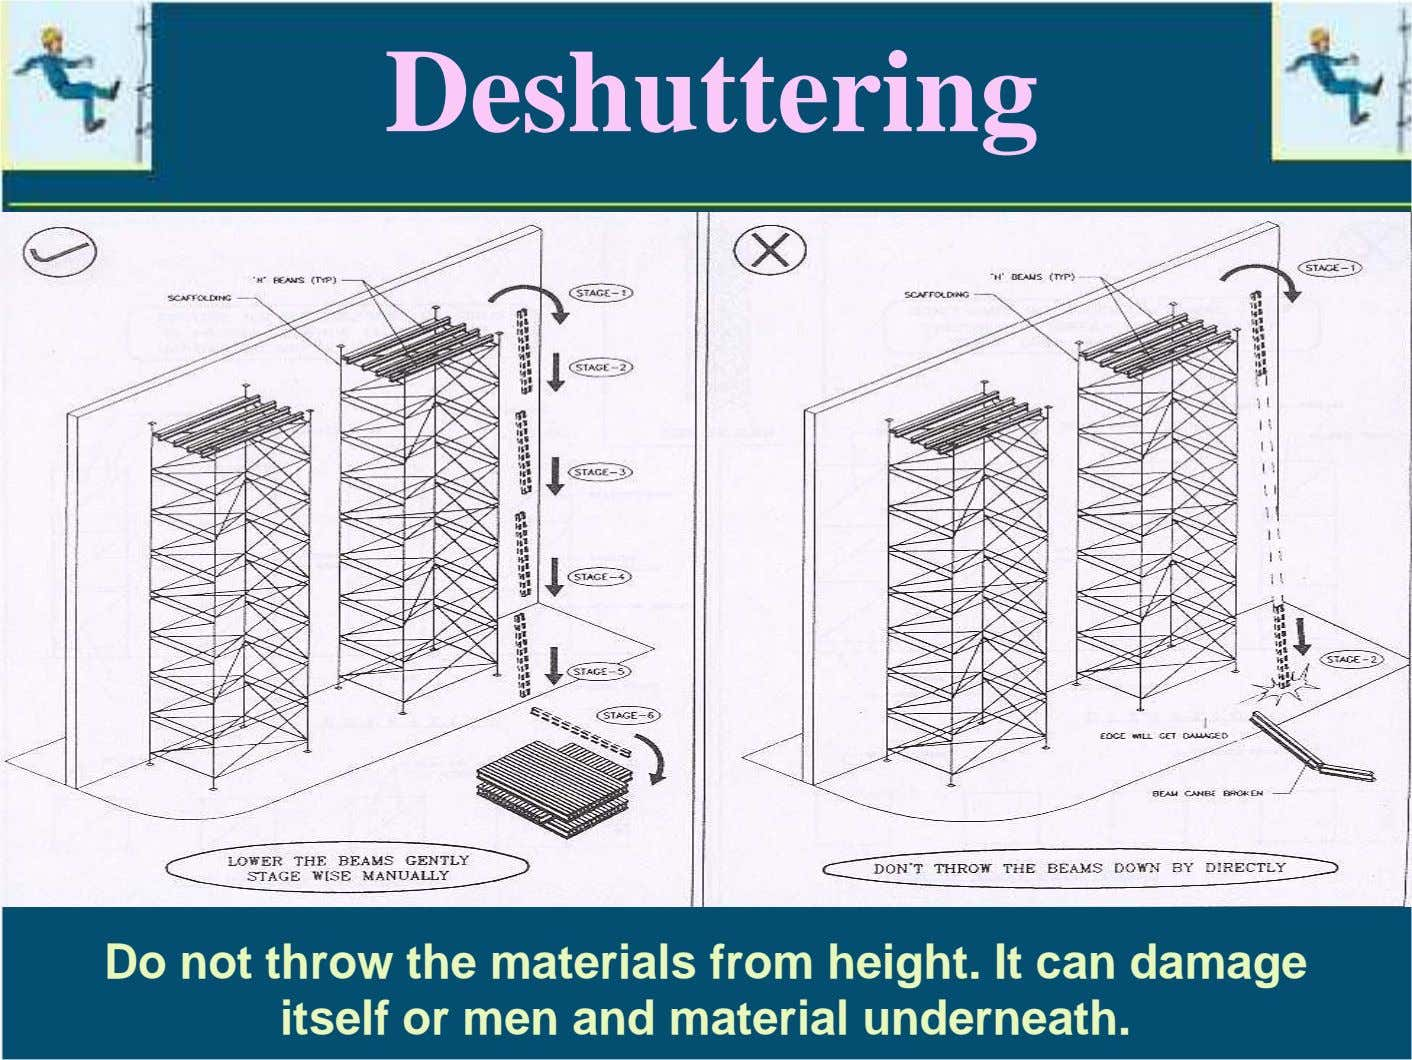 Deshuttering Do not throw the materials from height. It can damage itself or men and